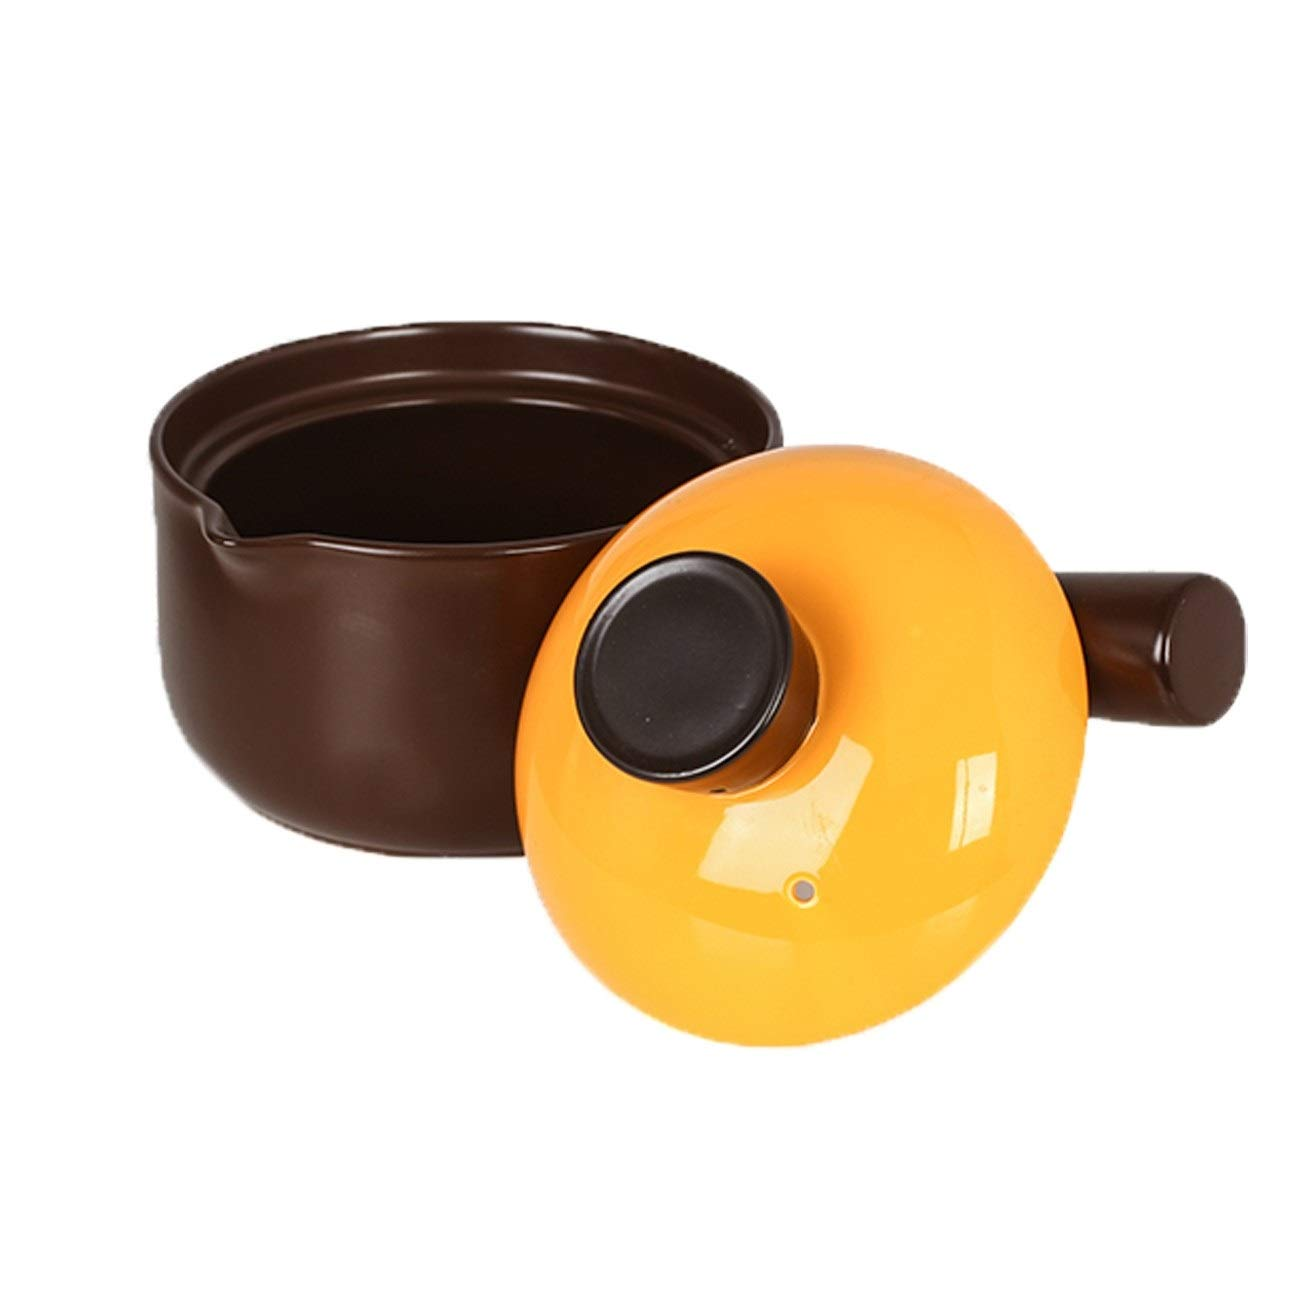 GUYUEXUAN Ceramic Milk Pot Single Handle Small Casserole Baby Food Supplement Pot Baby Boiled Noodles Hot Milk Small Pot Home Gas Milk Pot (Color : Rich Coffee Color) by GUYUEXUAN